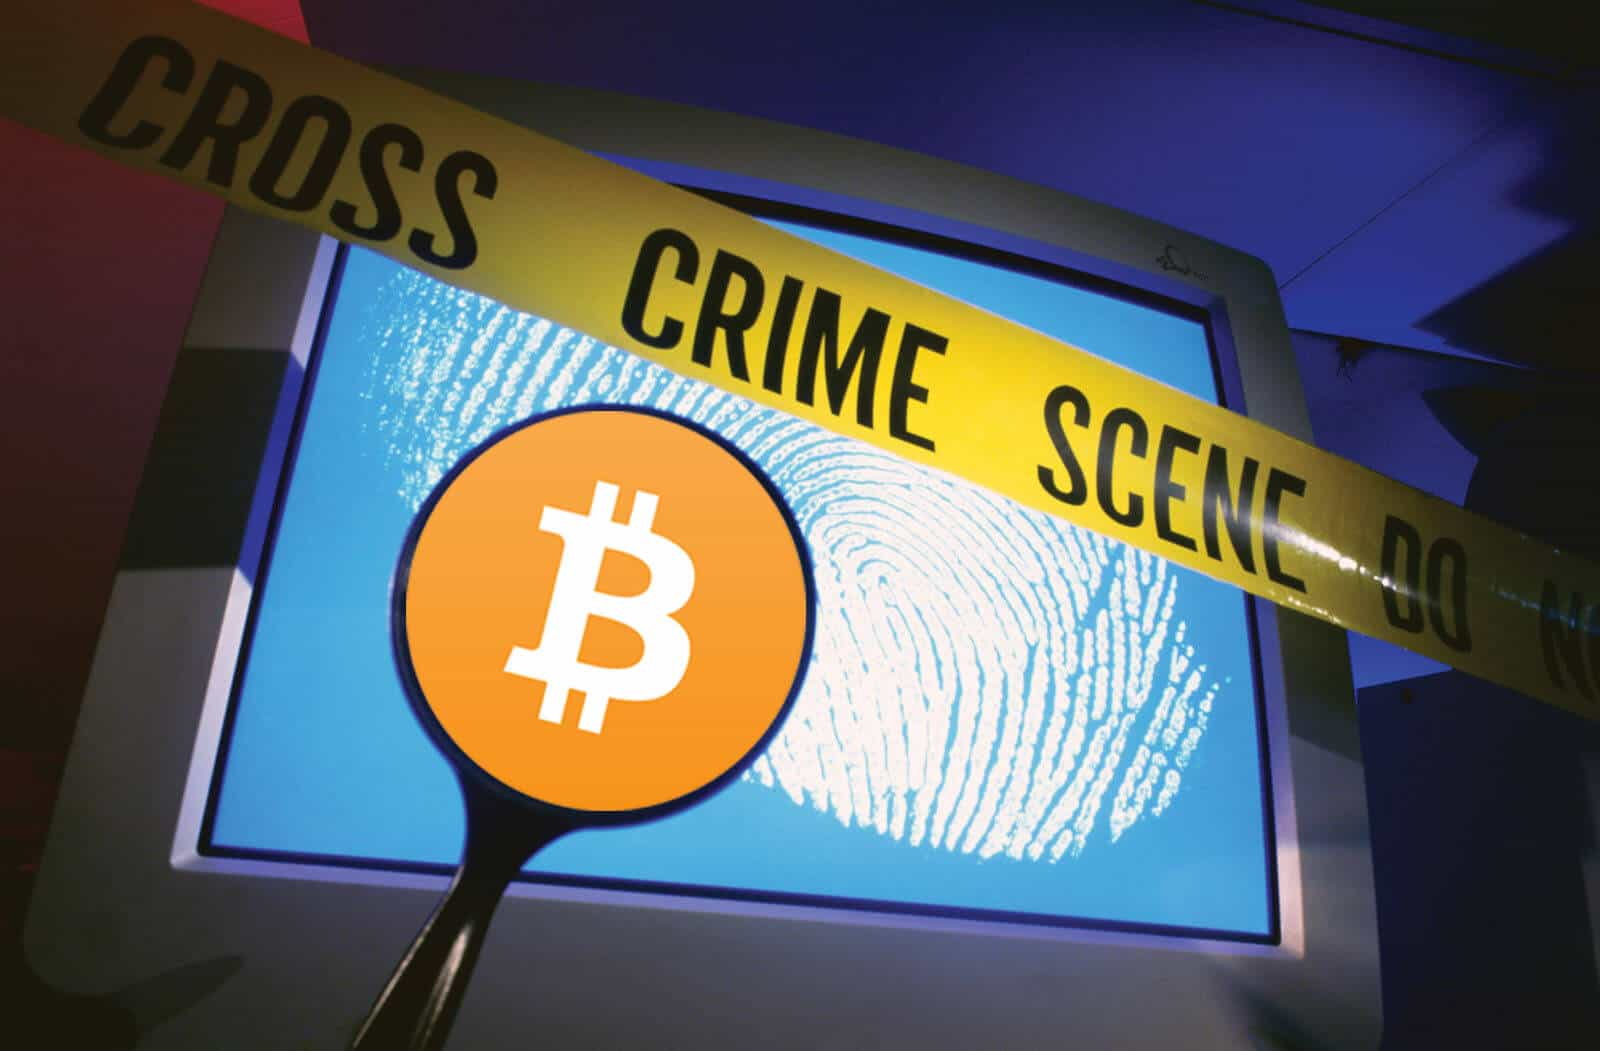 have people been arrested for using cryptocurrency